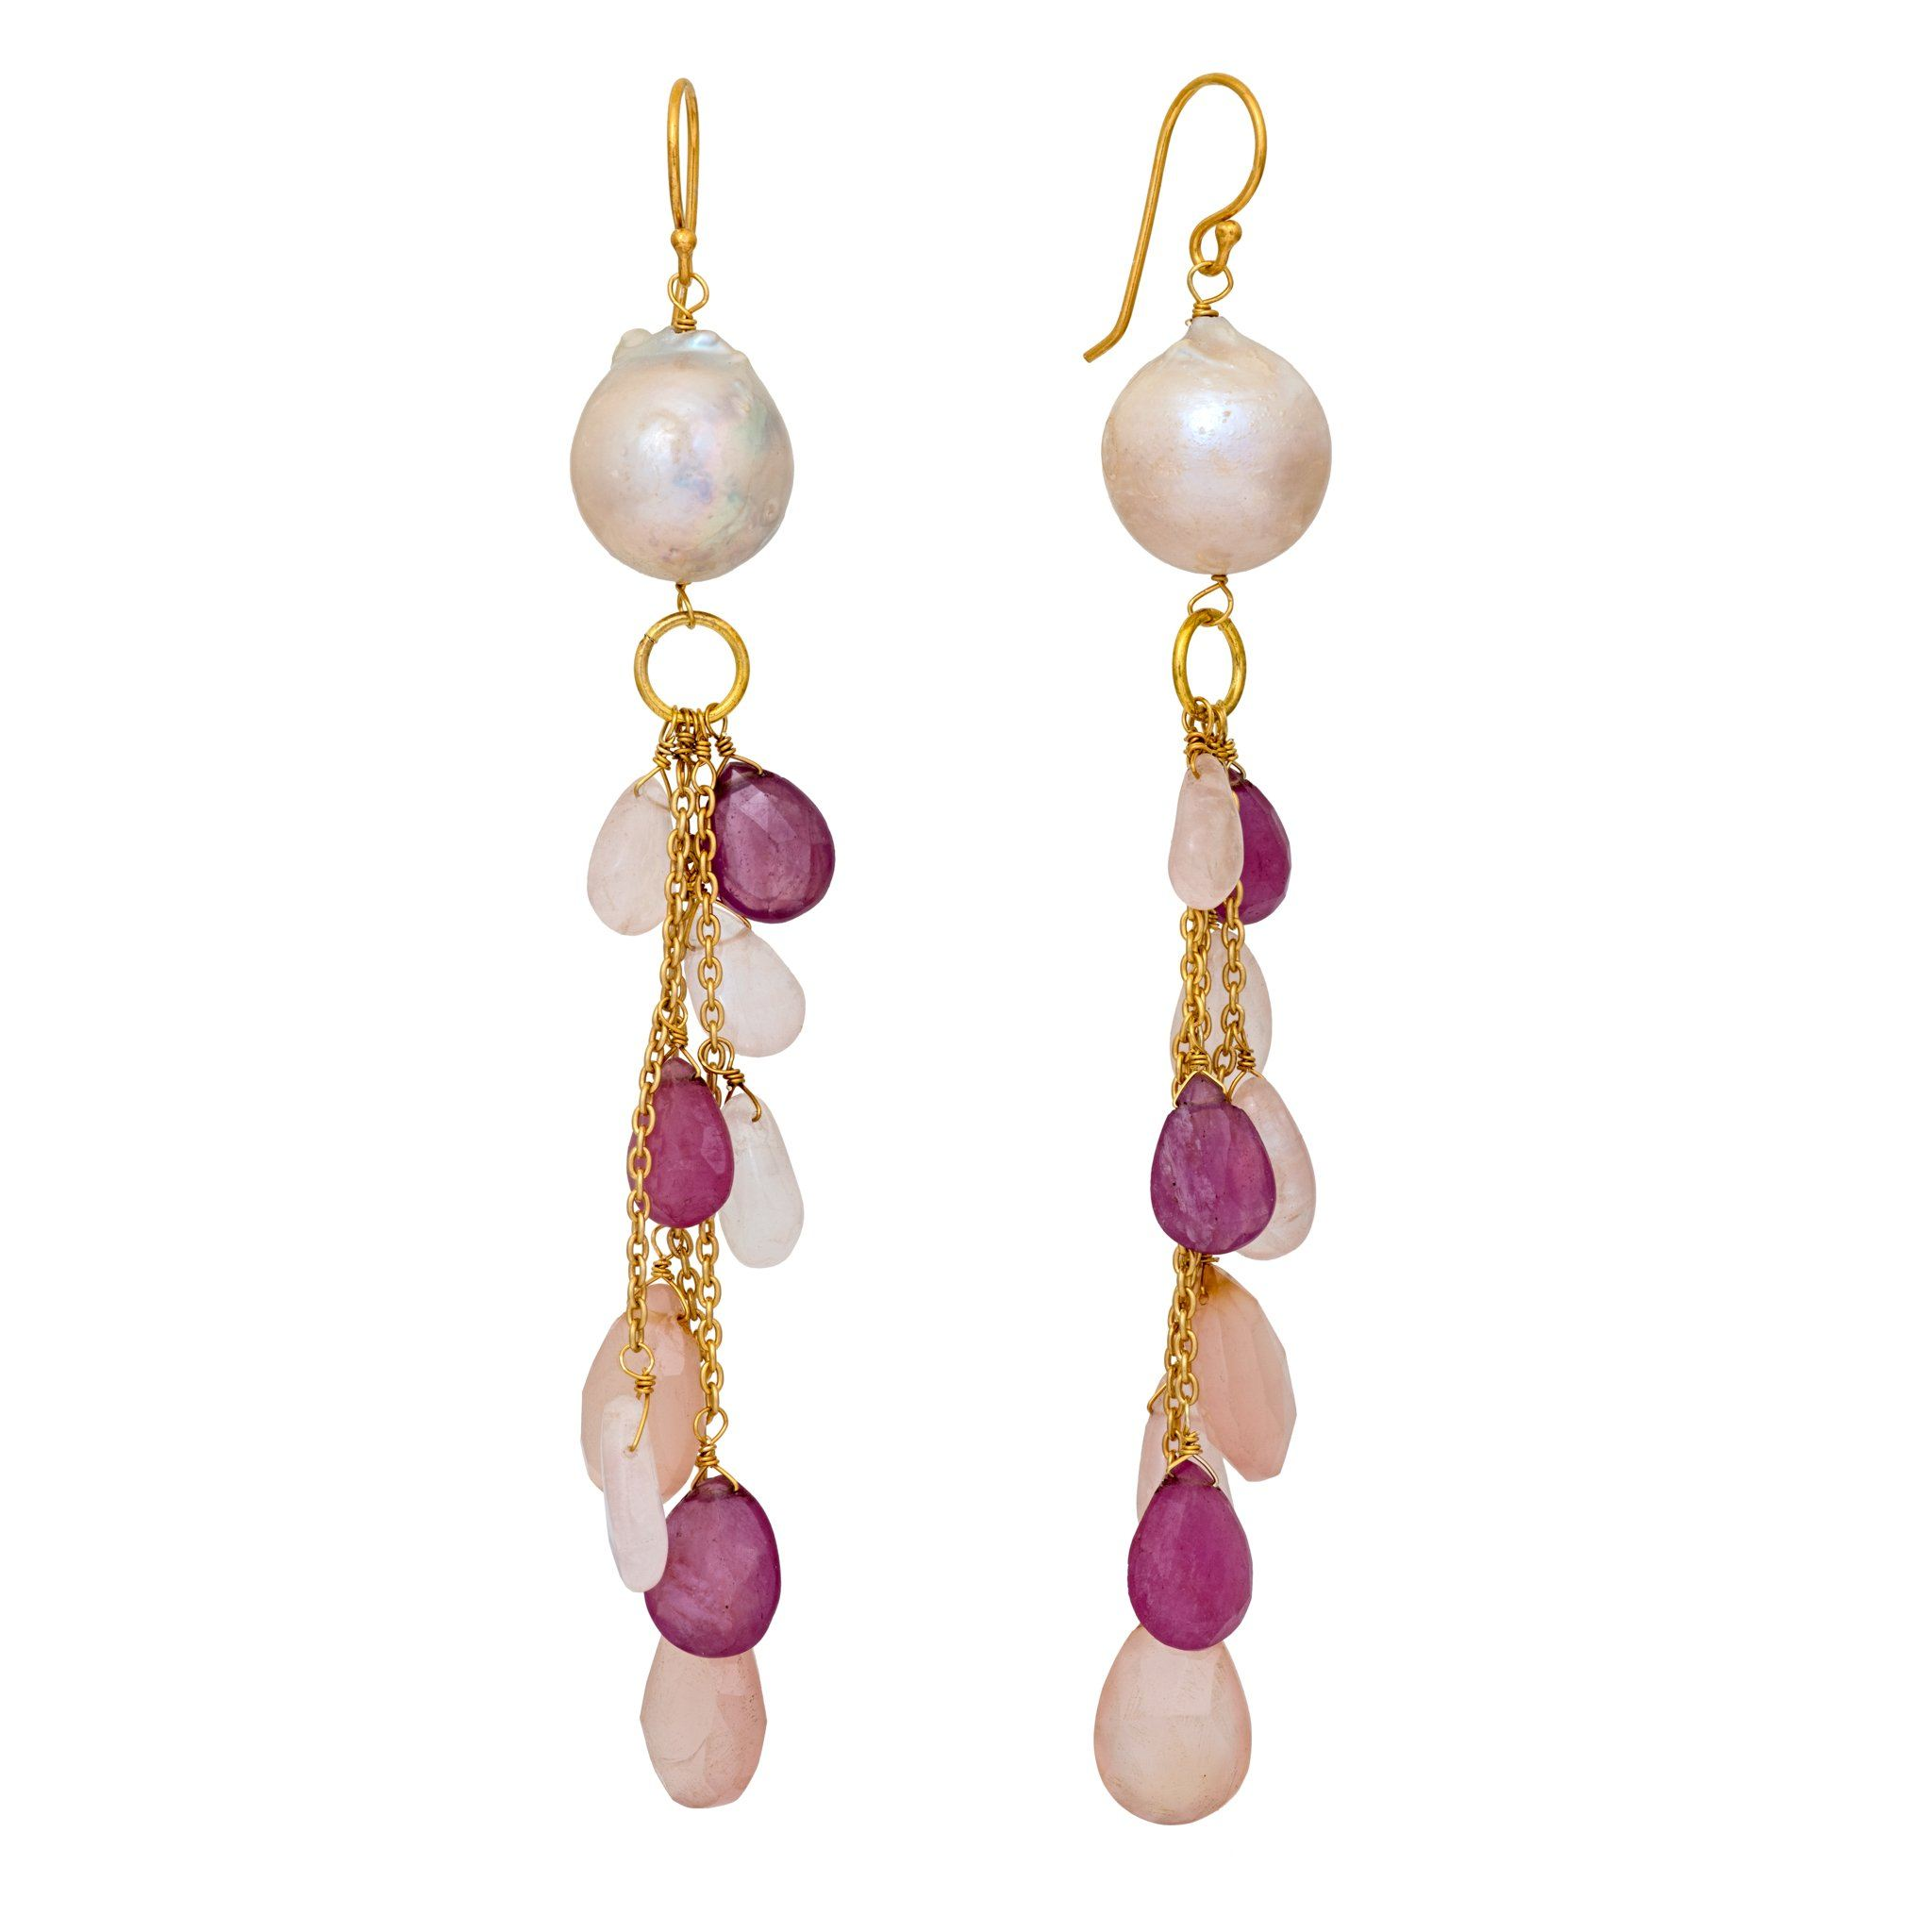 COCO pearl  and rose quartz long earrings with drops - MadamSiam